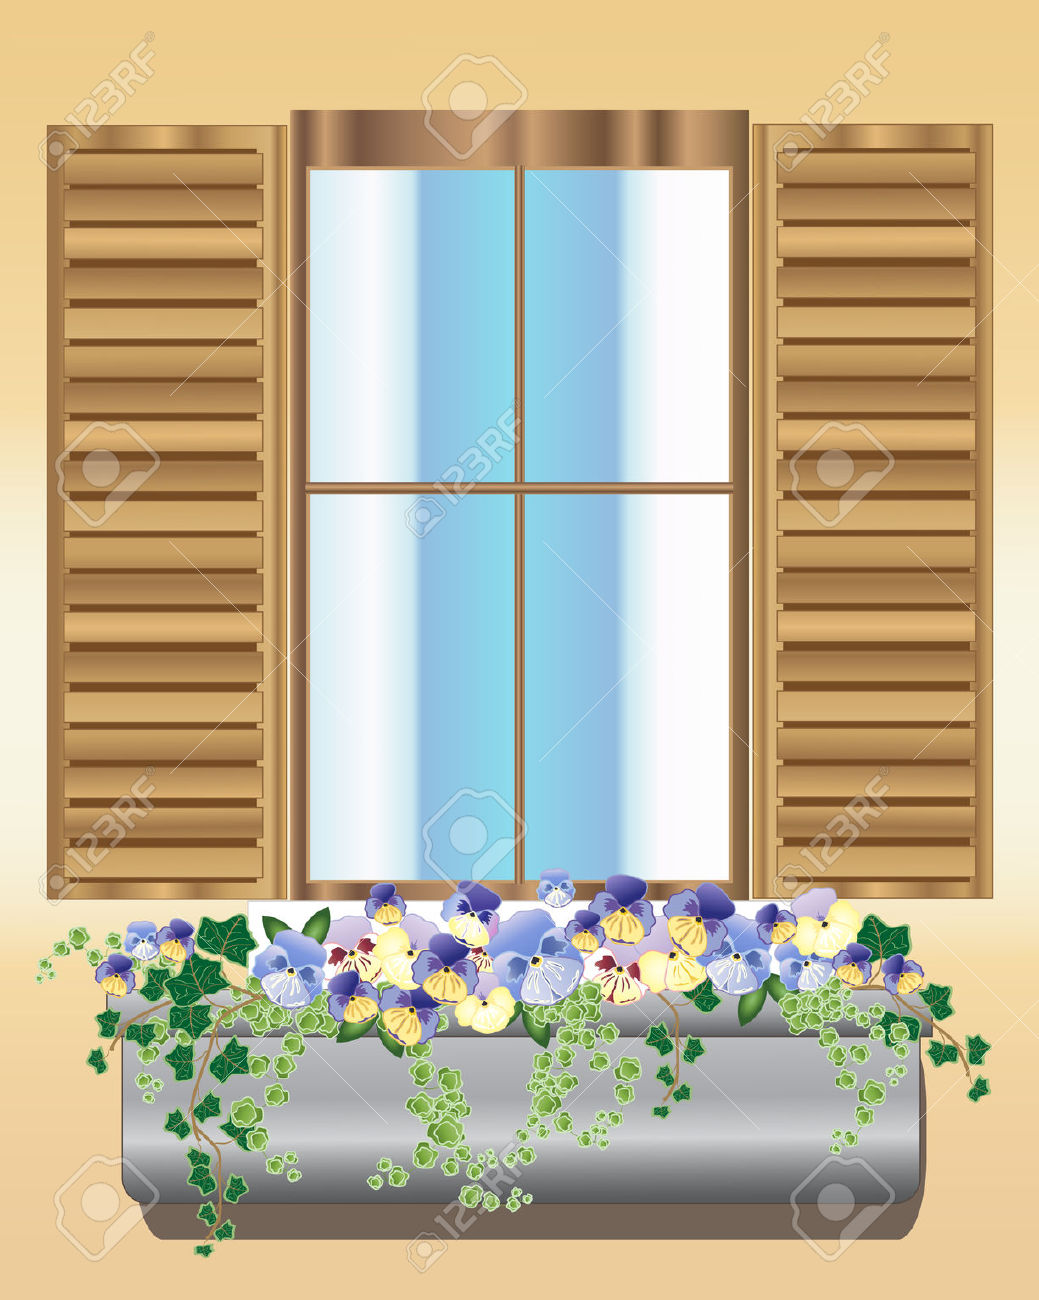 An Illustration Of A Wooden Window With Shutters And A Window.